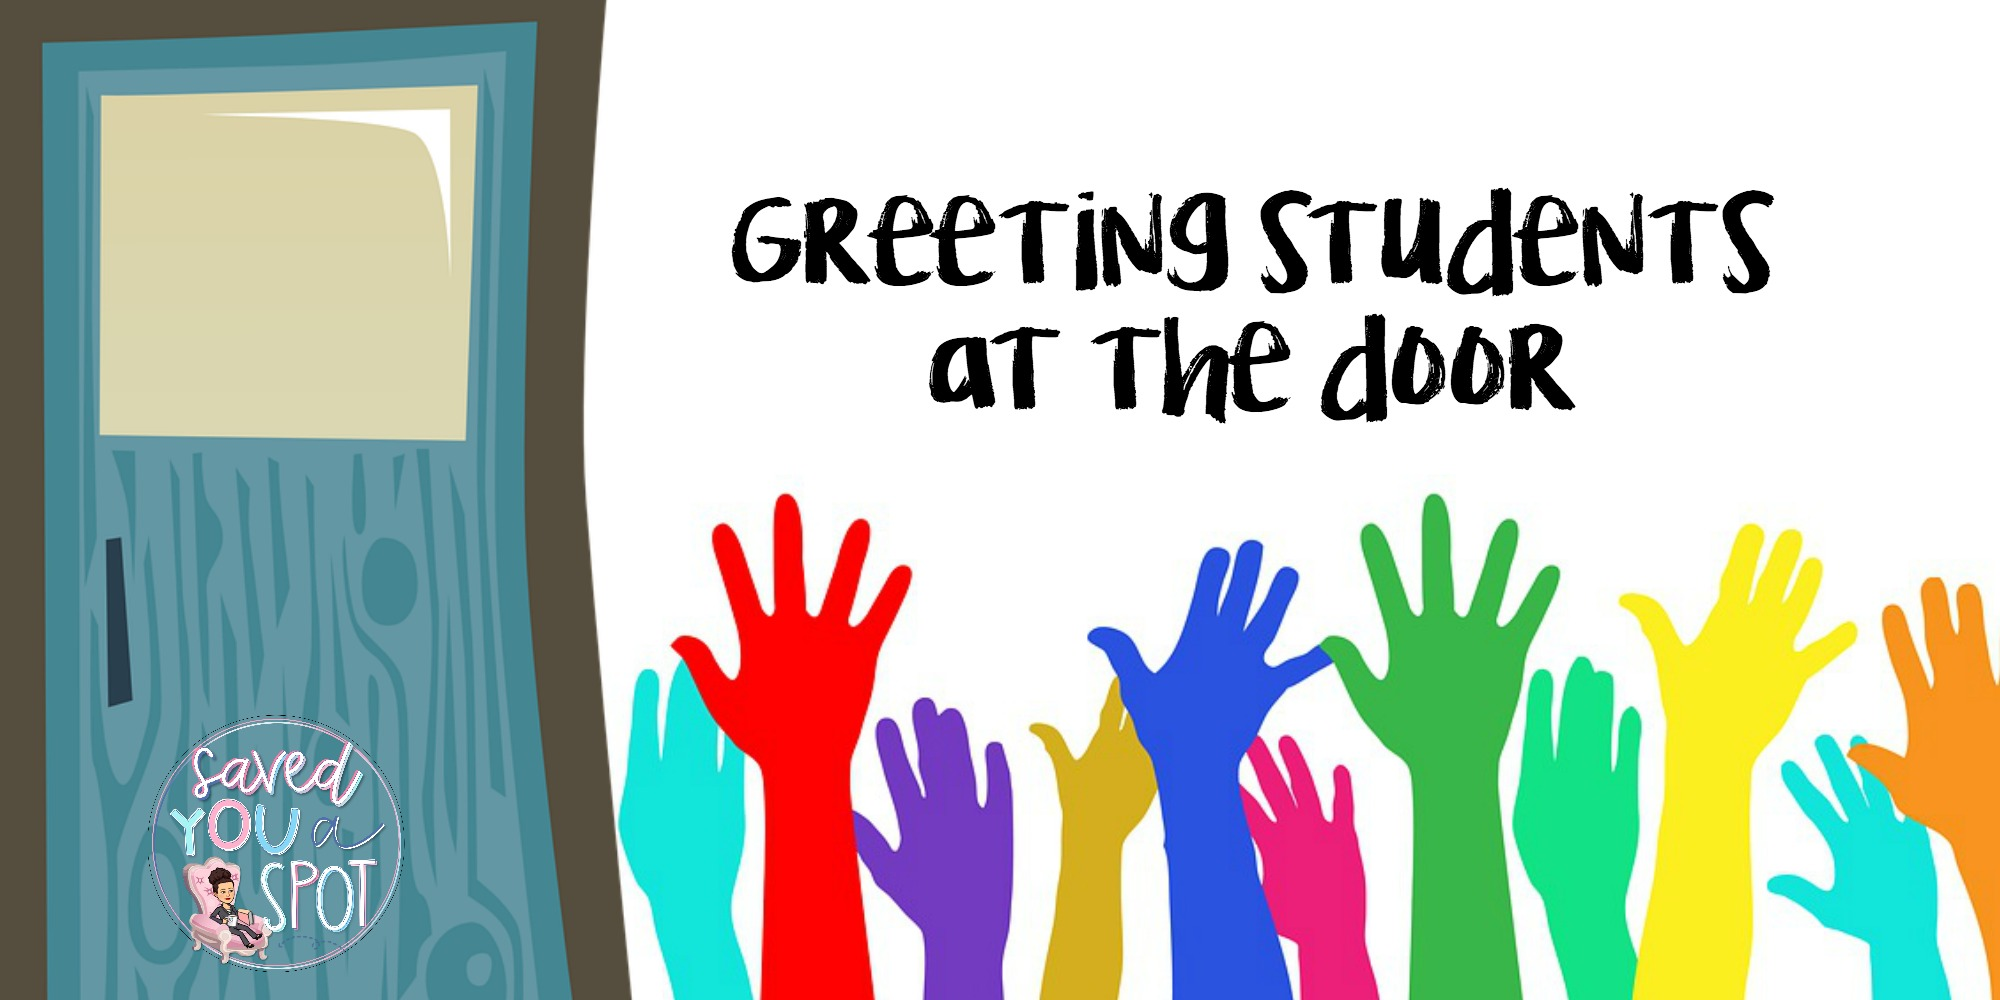 Greeting students at the door saved you a spot since the beginning of the year i have been making a conscious effort to greet every one of my students before they enter the classroom m4hsunfo